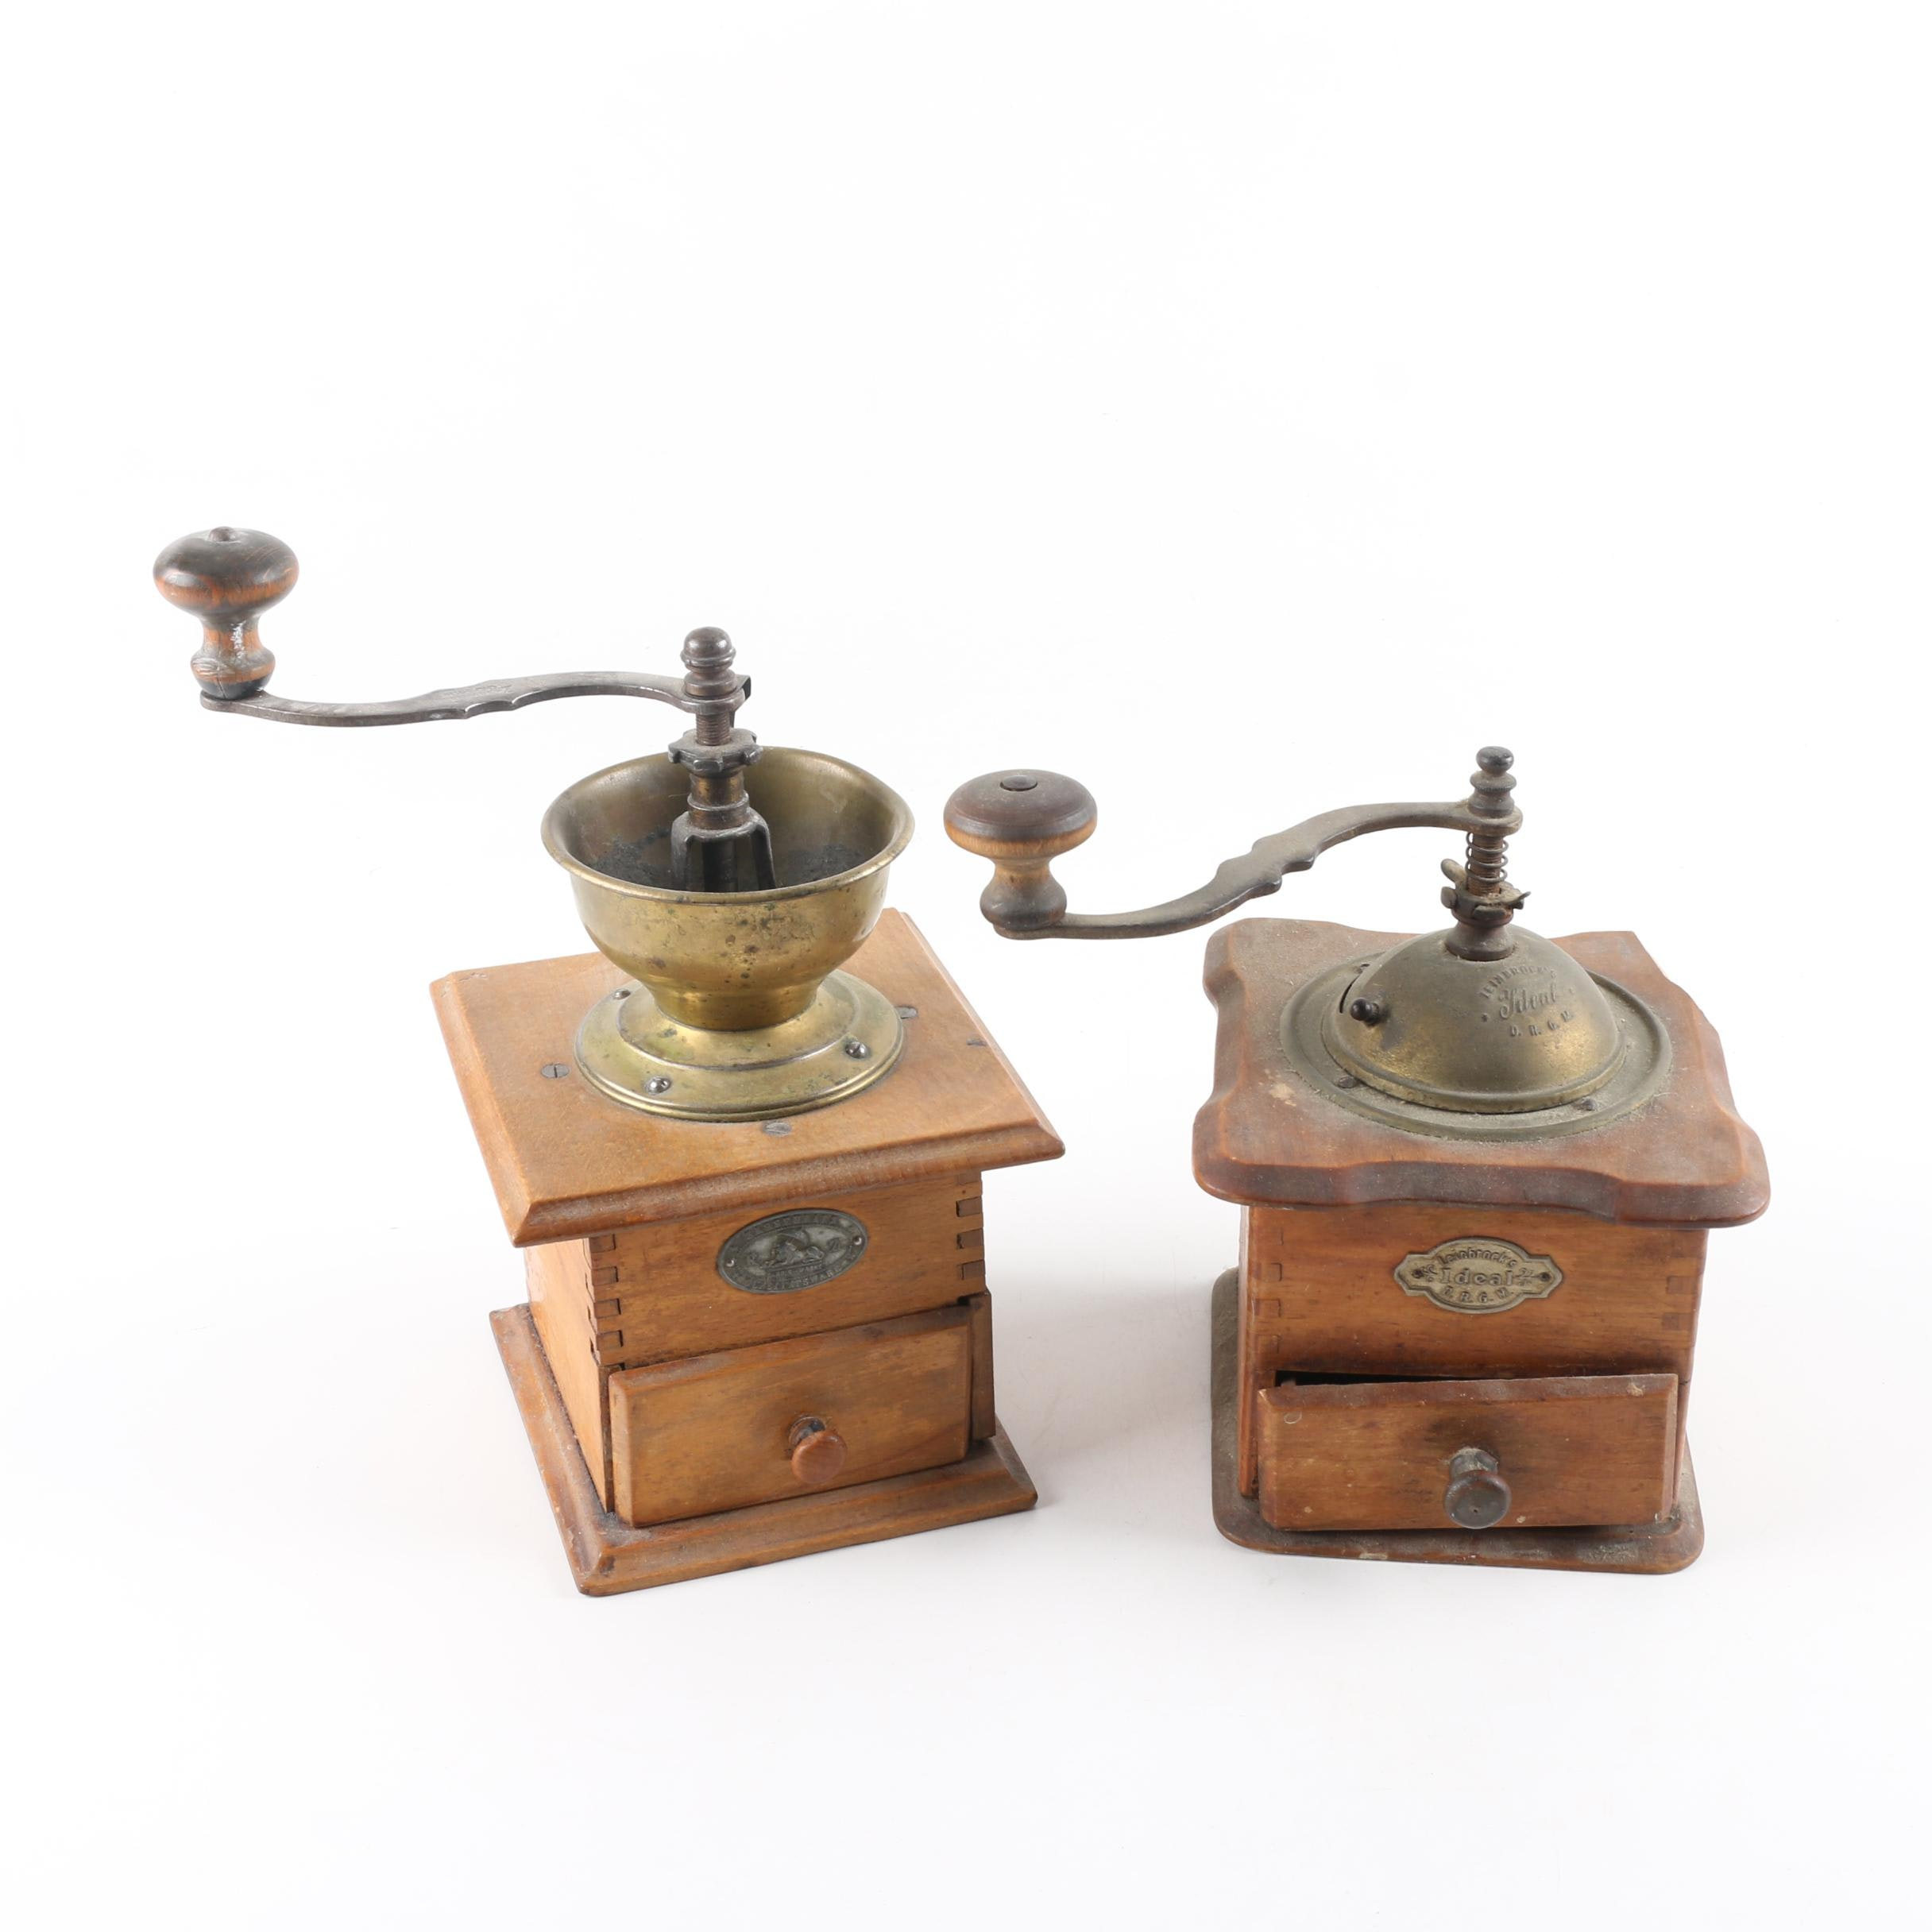 Antique Brass and Wood Coffee Grinders